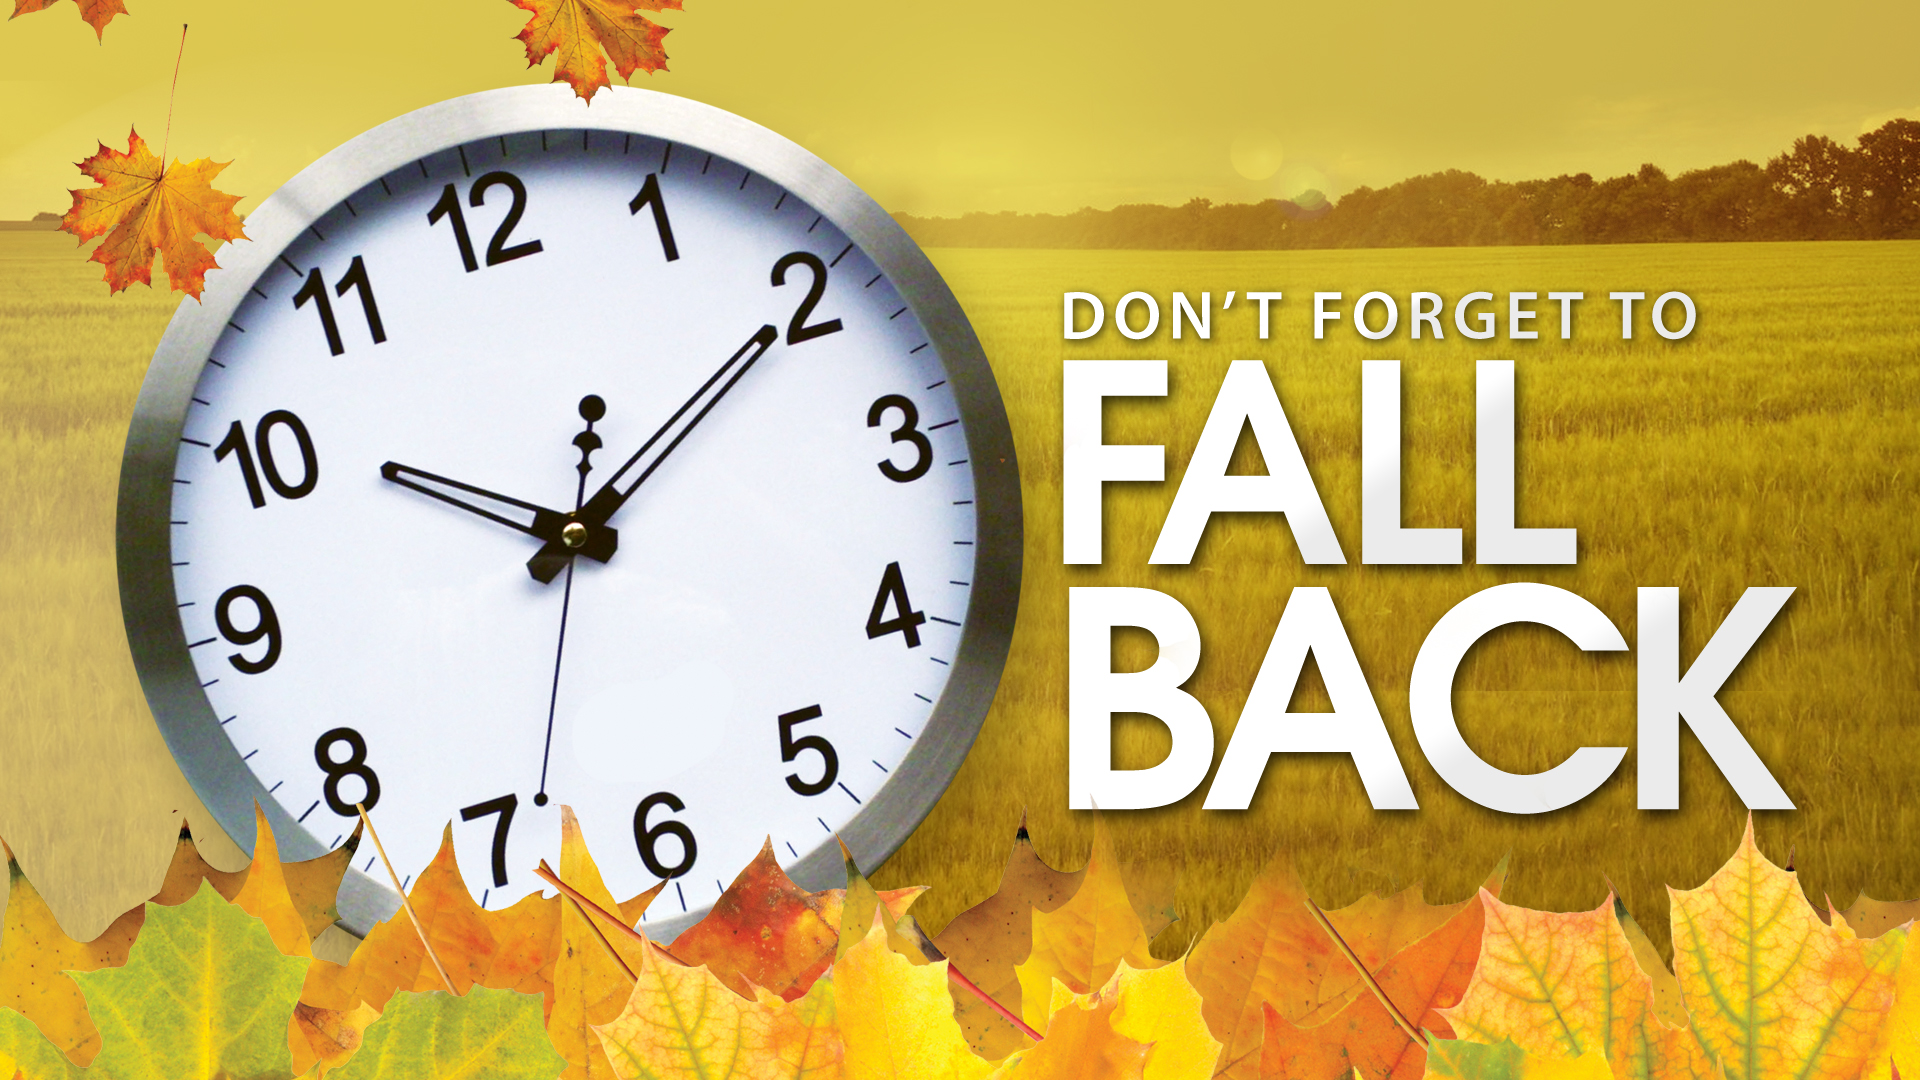 Daylight savings time fall back clipart banner black and white stock 57+ Fall Back Clipart | ClipartLook banner black and white stock